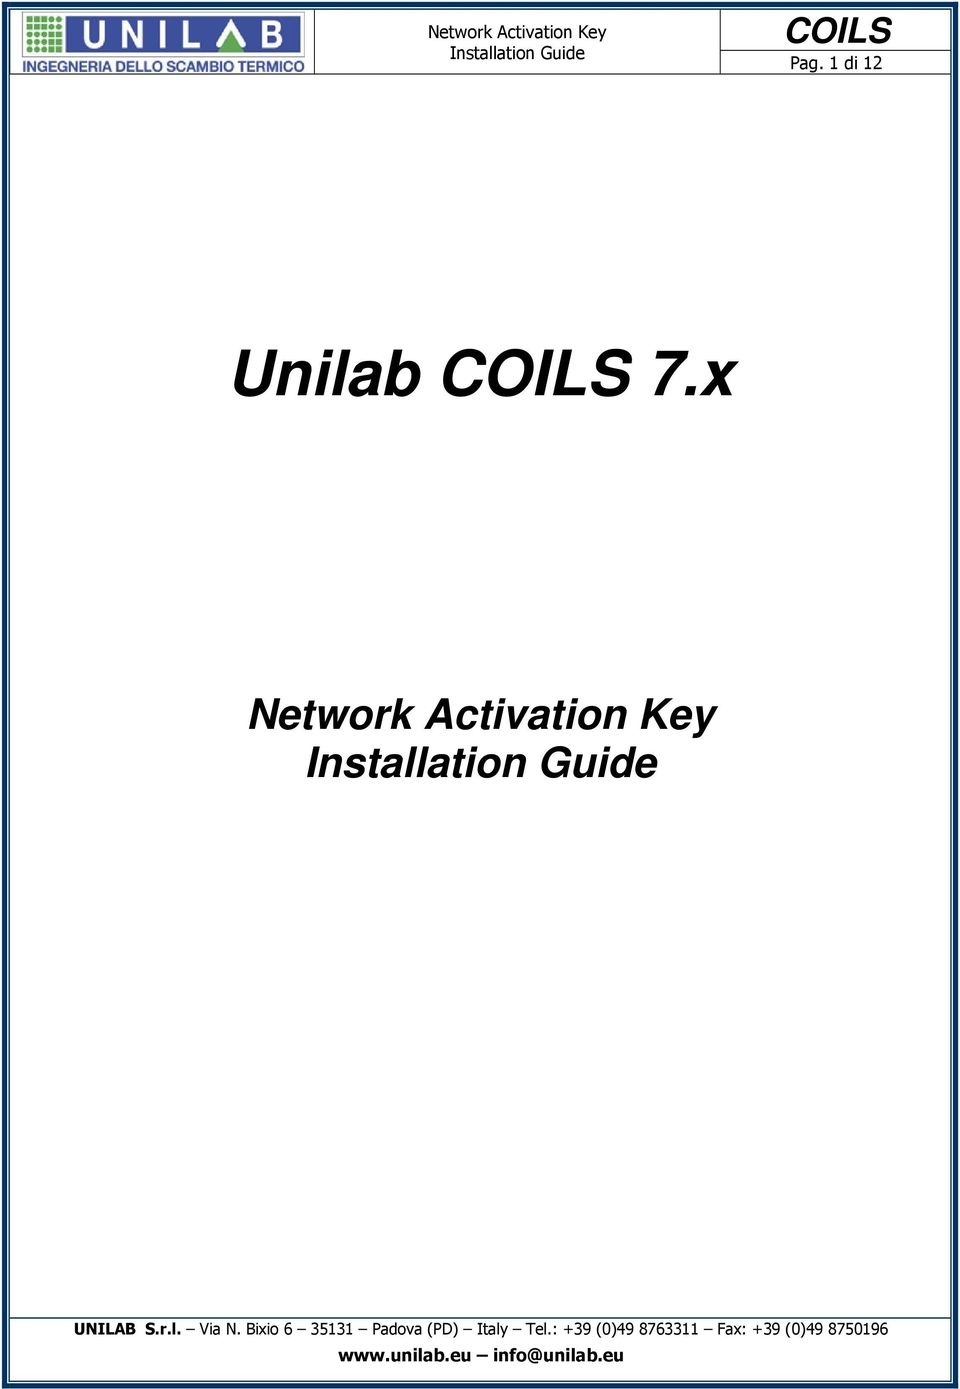 how to get an activation key from a network